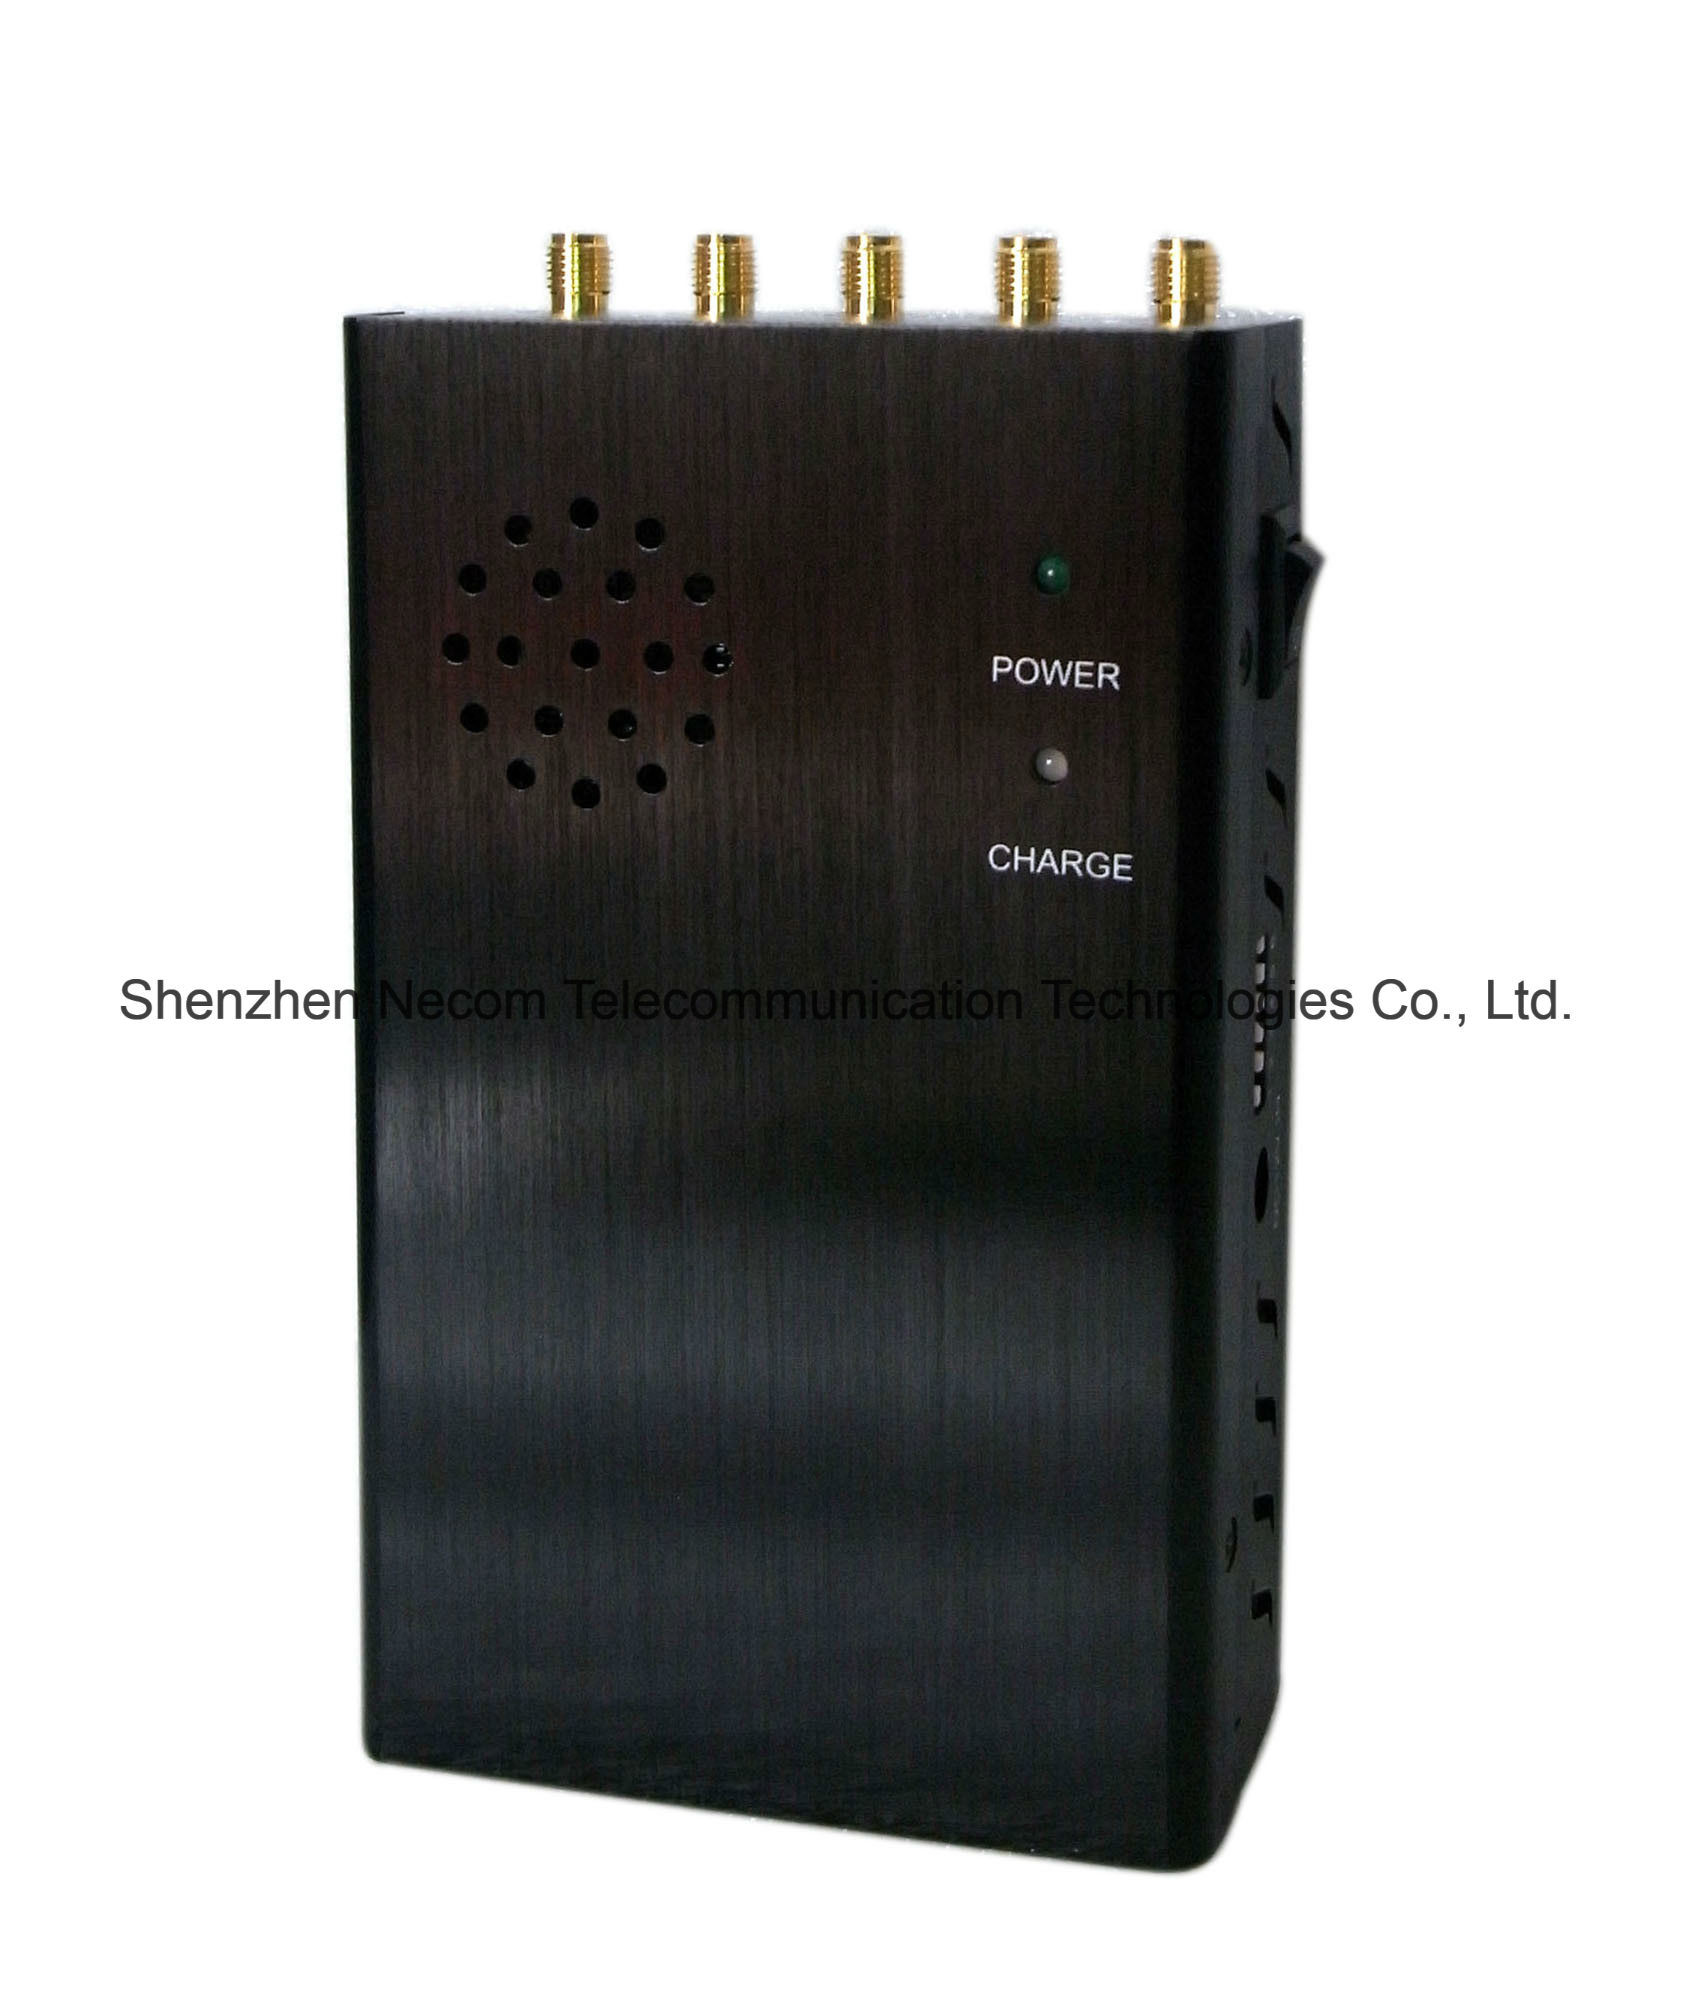 China Wireless Signal Jammer with Good Quality&Favourable Price Jamming for Wired Camera, GPS Tracker, Mobile Phones, GSM Jammer/GPS Jammer /Cell Phone Jammer - China 5 Band Signal Blockers, Five Antennas Jammers